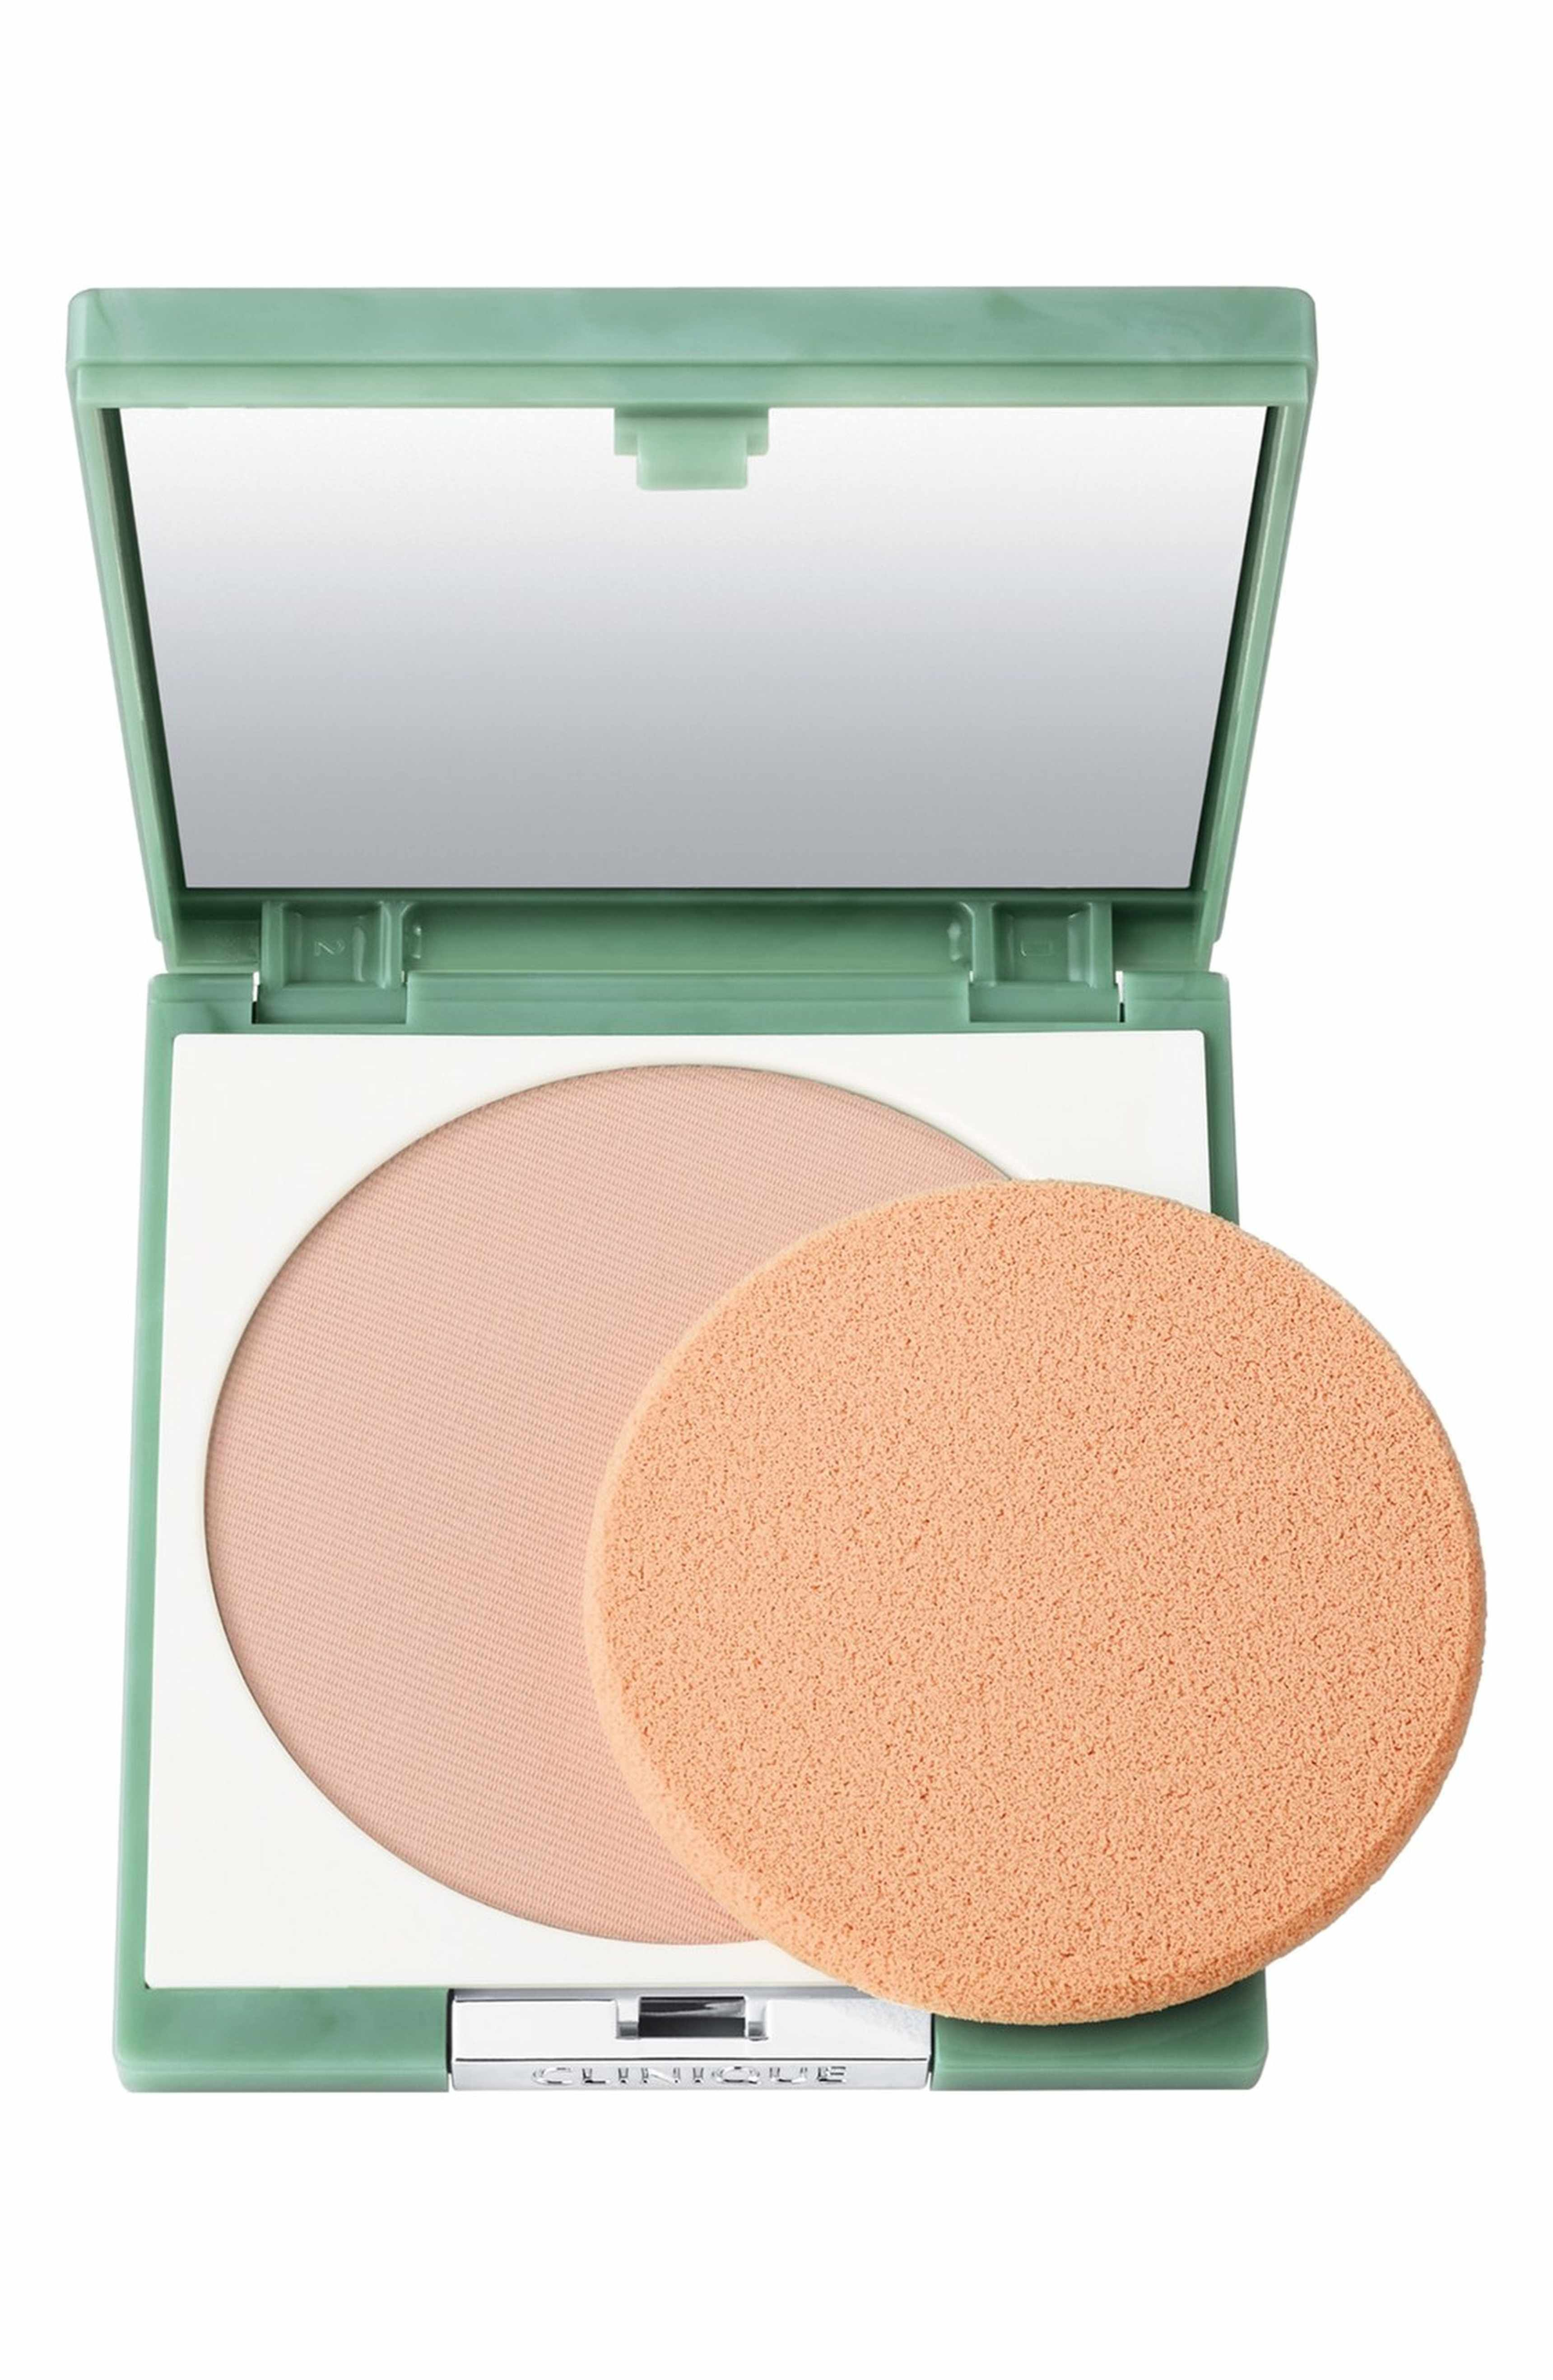 Clinique Superpowder Double Face Makeup FullCoverage